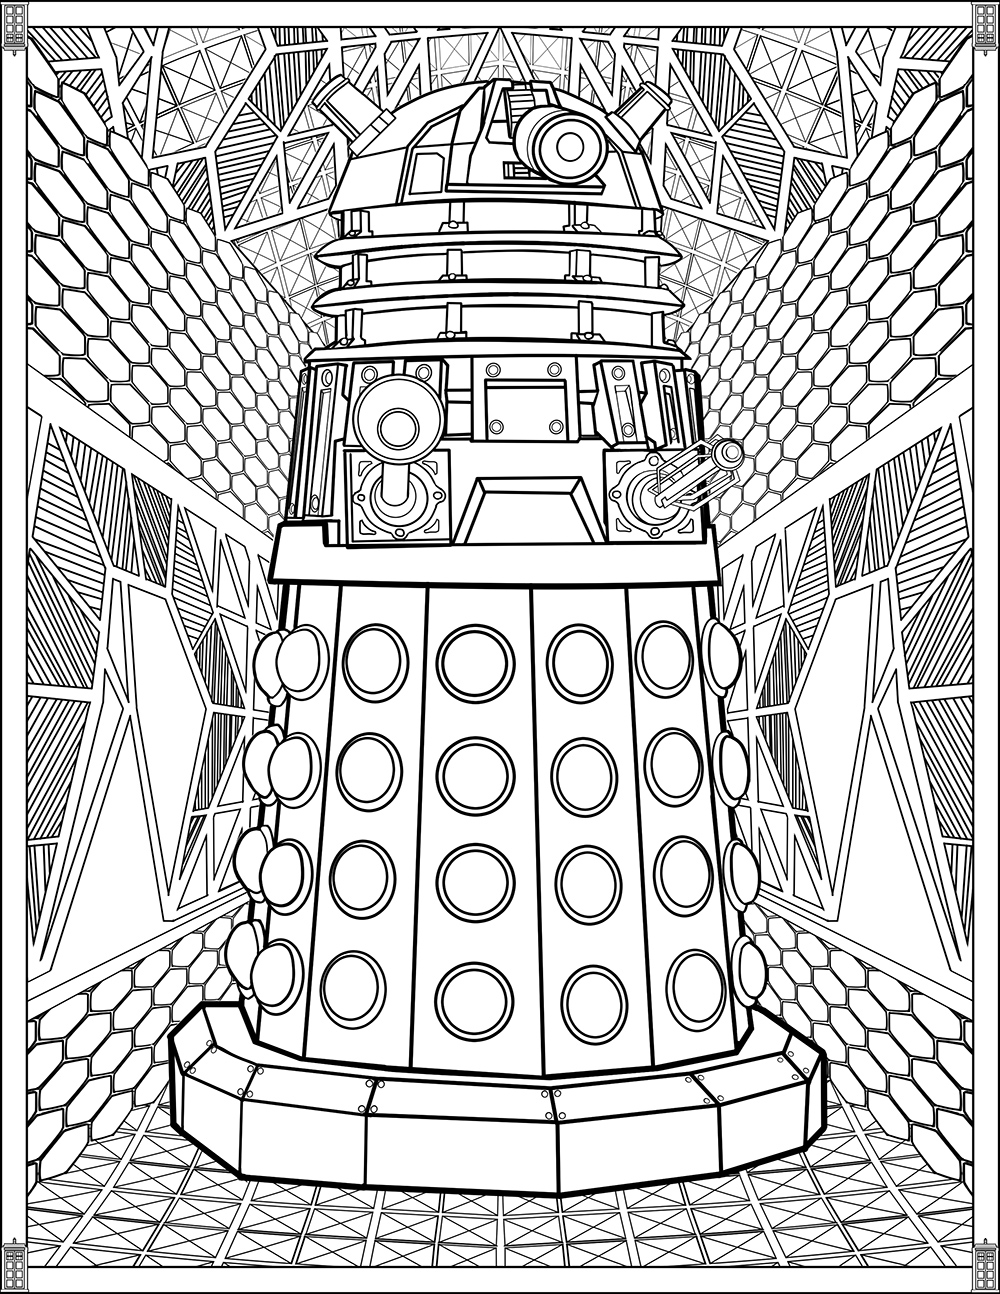 tardis coloring page 7 free doctor who fan art coloring books plus bonus coloring pages kitchen overlord tardis page coloring